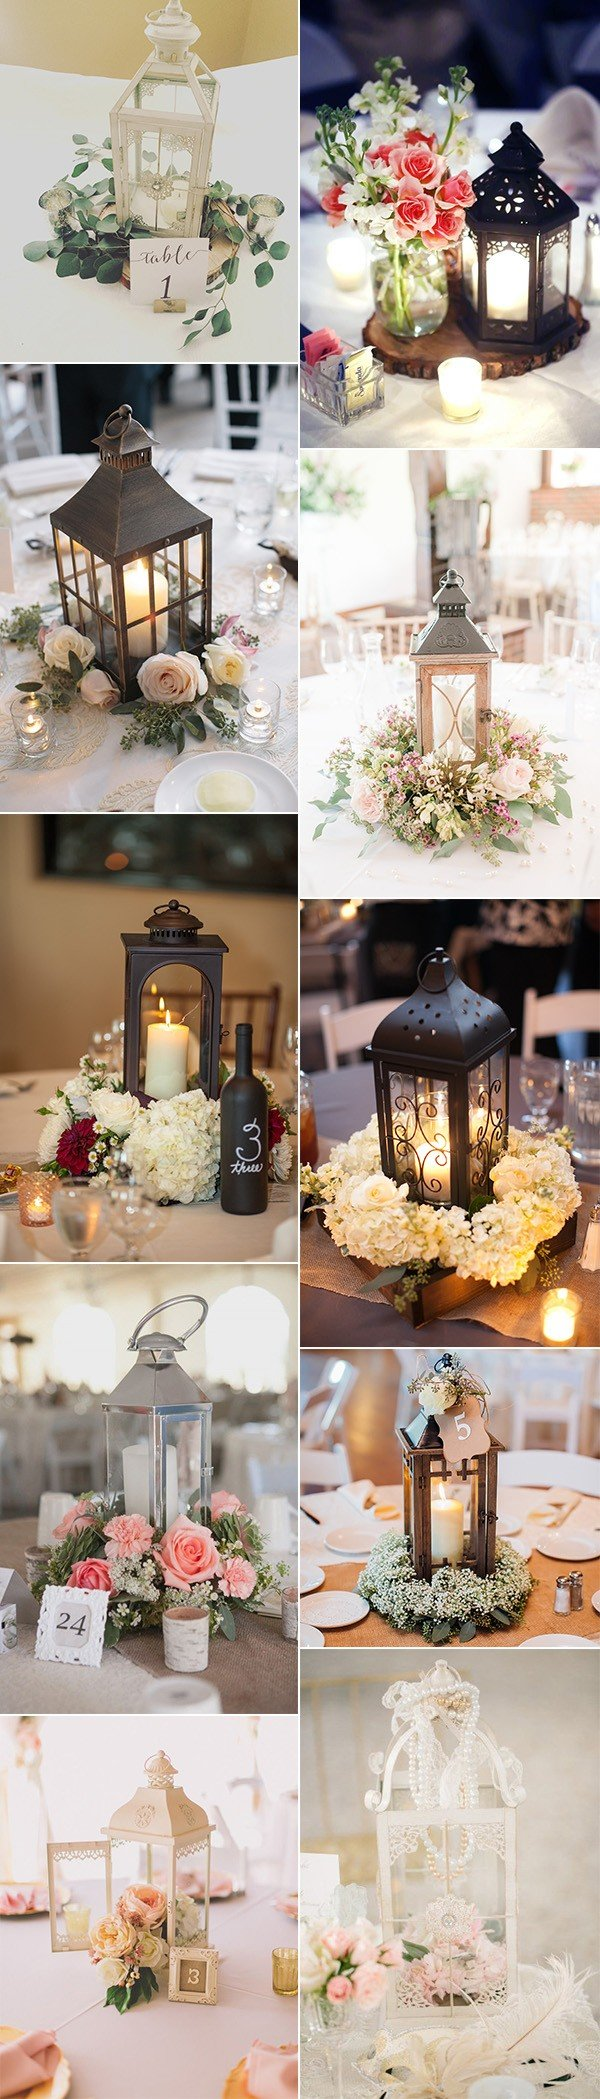 50 Fabulous Vintage Wedding Centerpiece Decoration Ideas - Page 2 of 3 - Oh  Best Day Ever